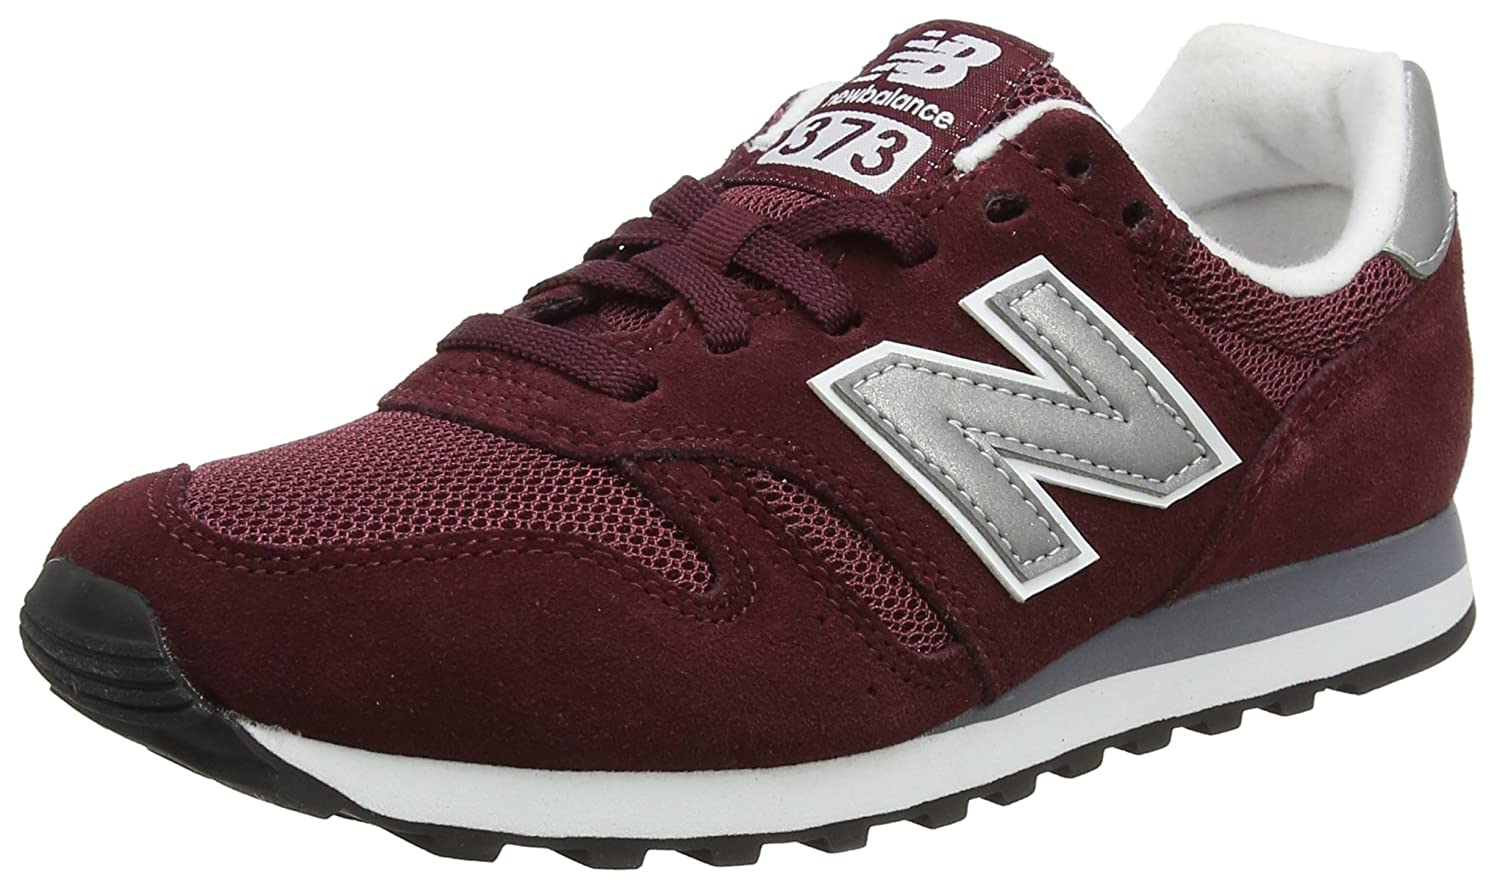 New Balance Men's 373V1 Sneaker B07D18WBBP 9.5 M US|Burgundy